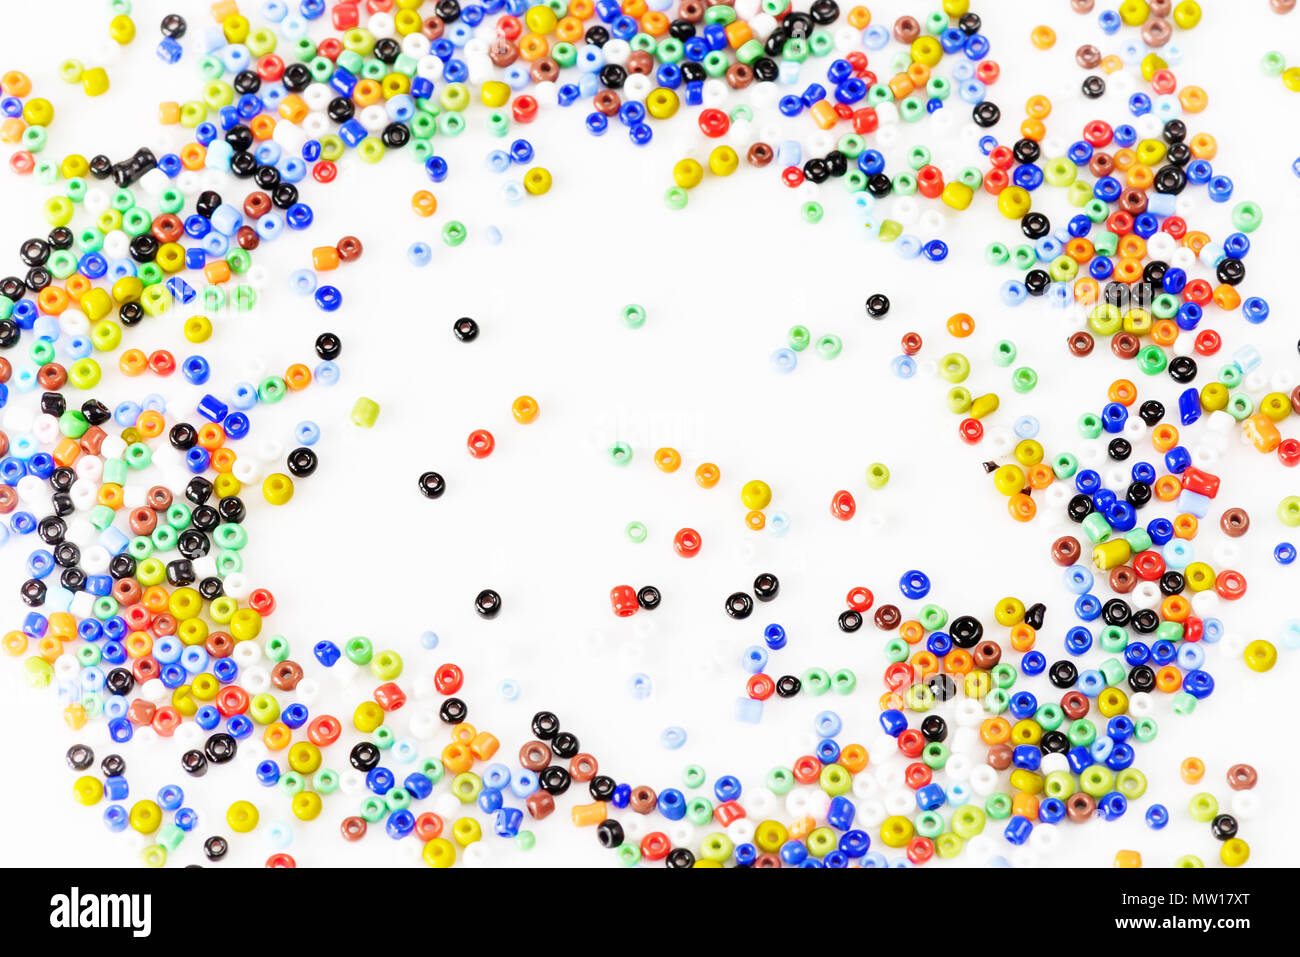 Many multi-colored beads for needlework are scattered on a white ...